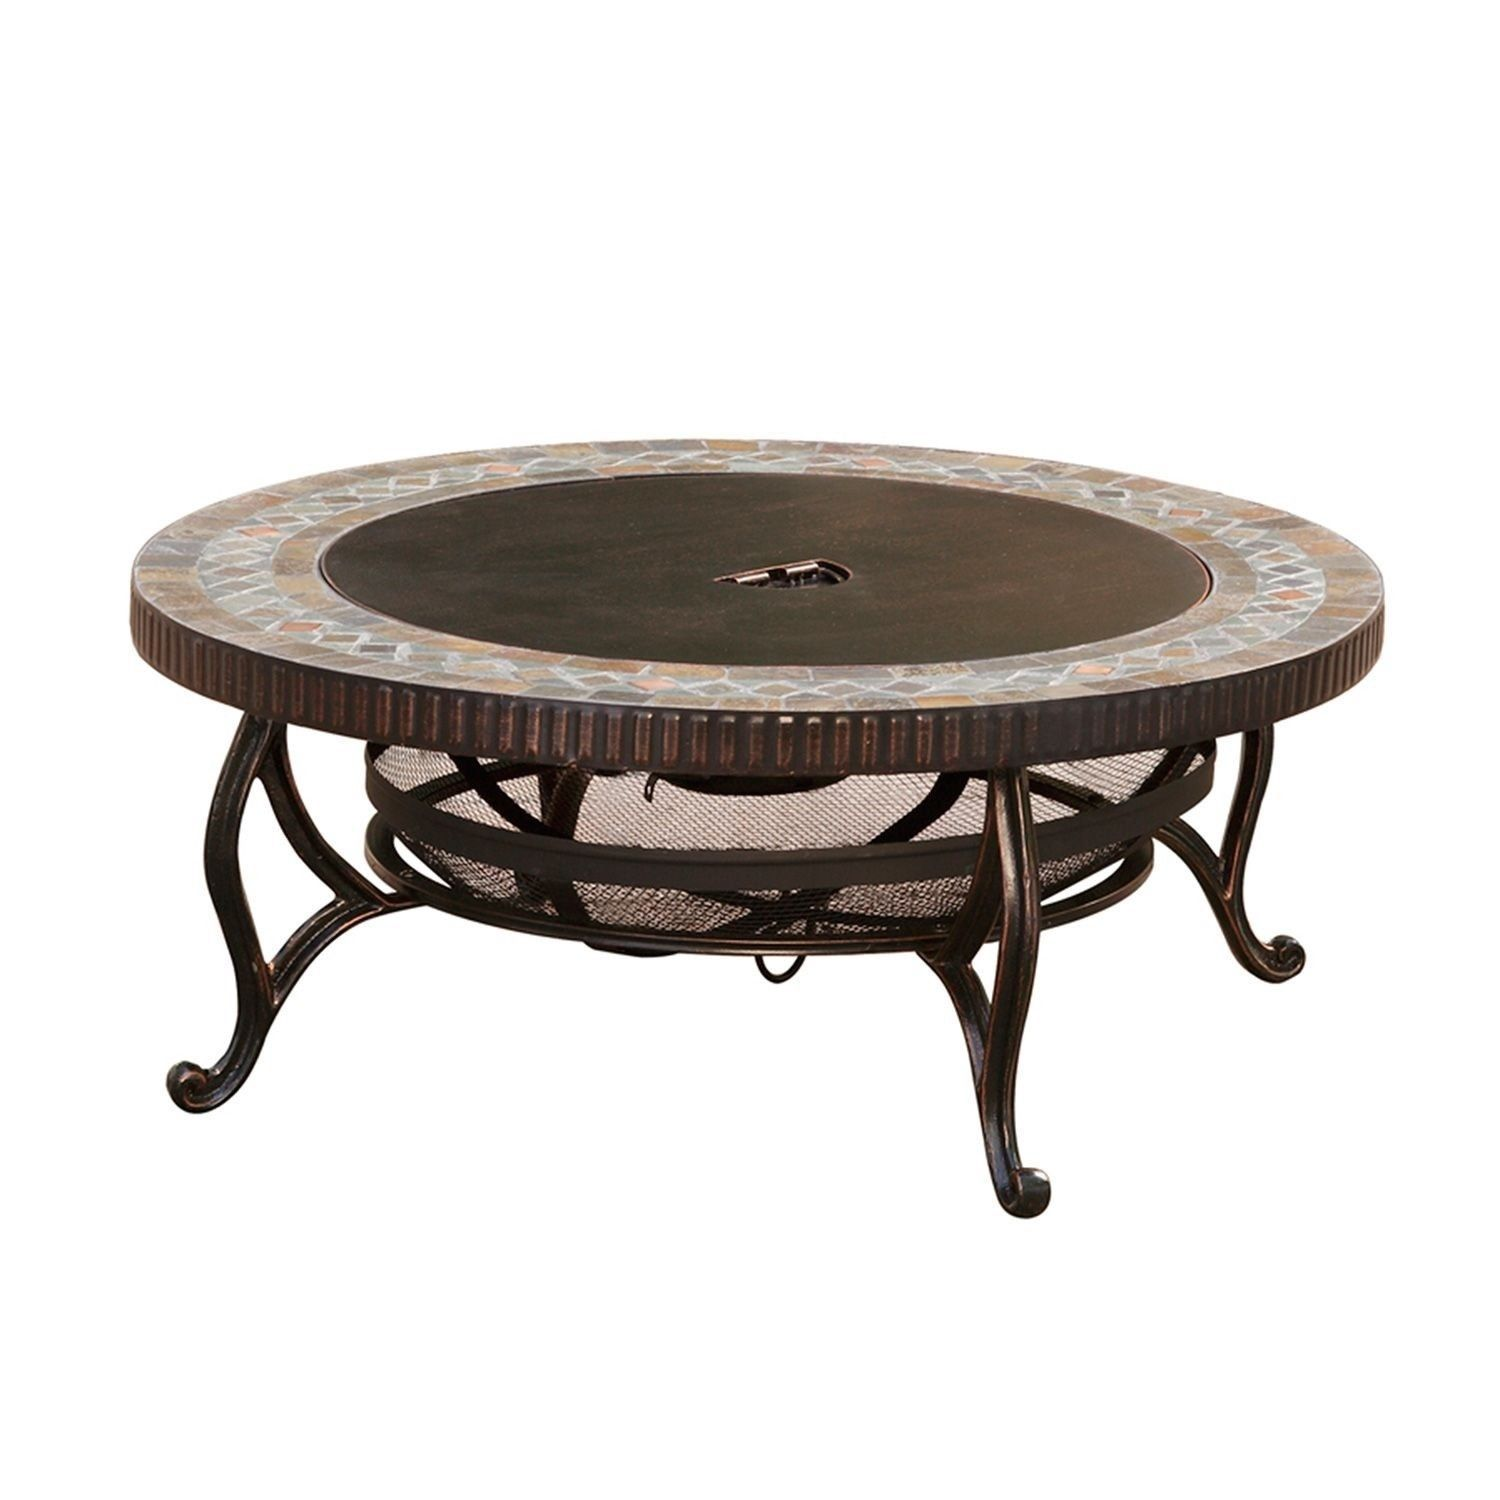 Portable Outdoor Fire Pit Grill : Outdoor Fireplace Grill Fire Pit Patio Backyard Deck heat portable